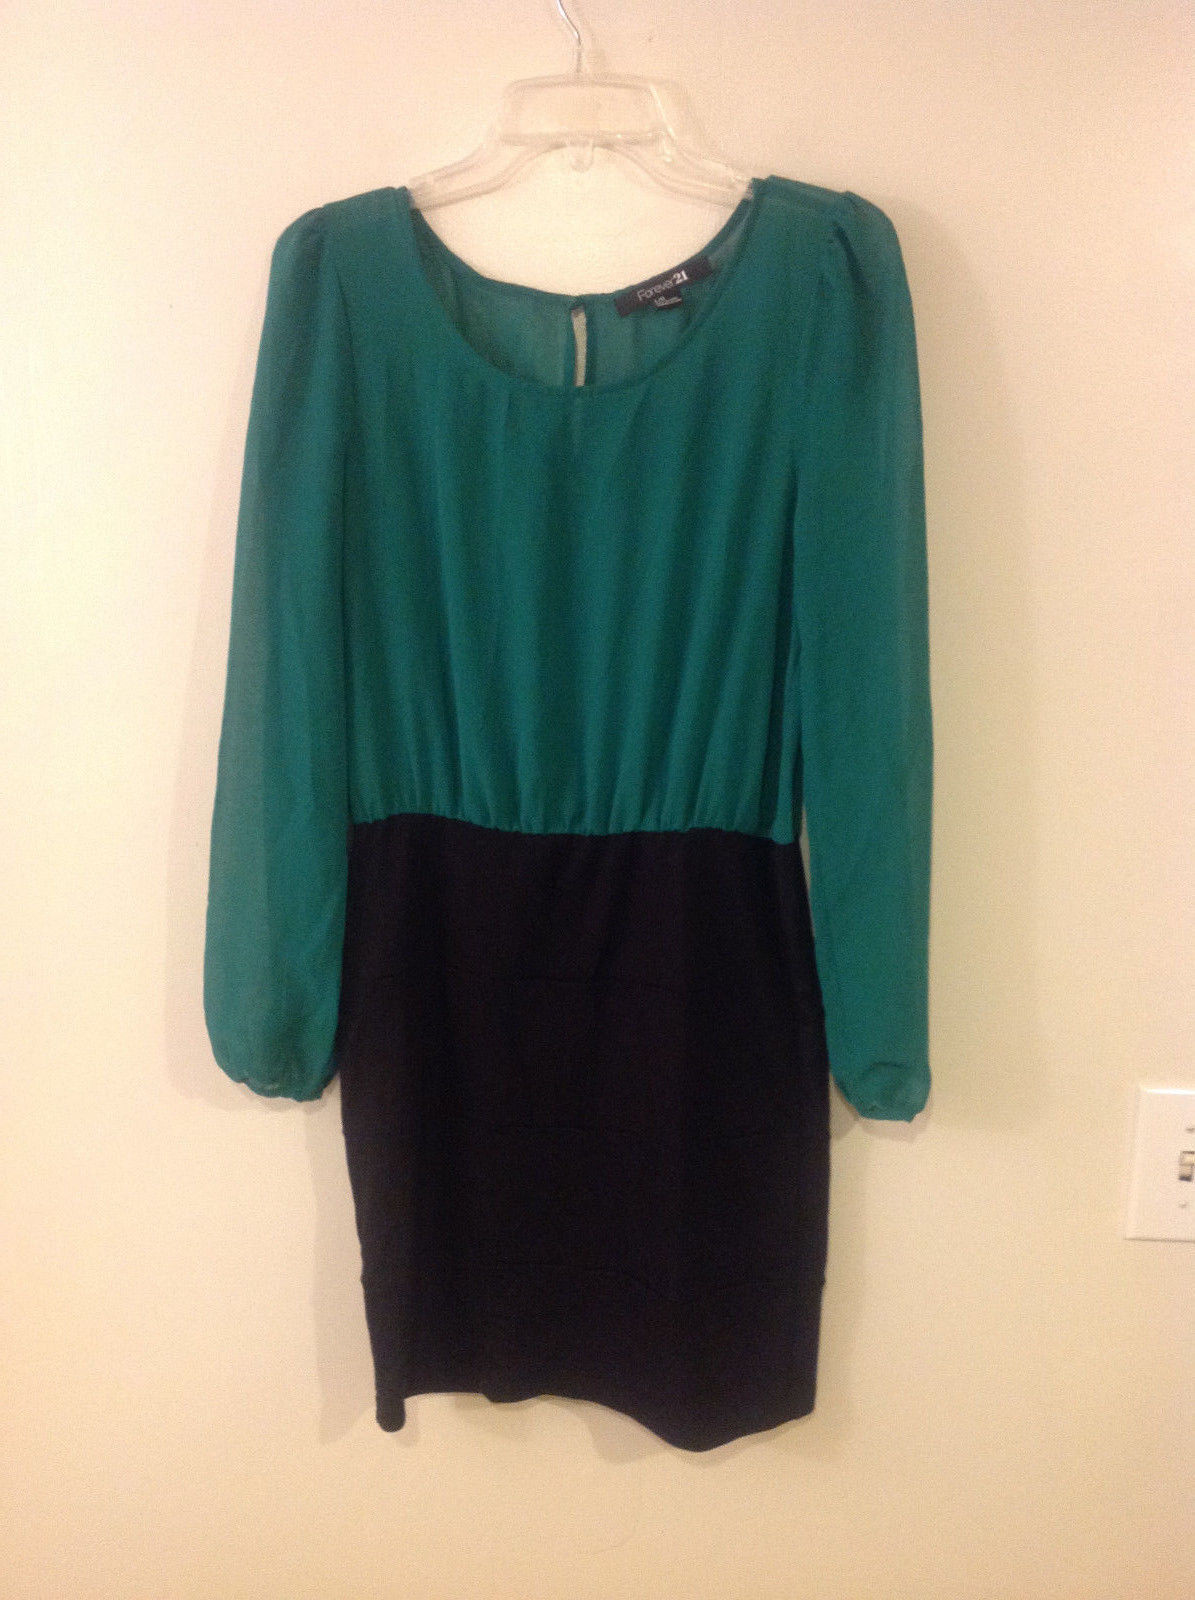 Forever 21 F21 Women's Size L Dress Green Blouse Bodice & Black Bandage Skirt